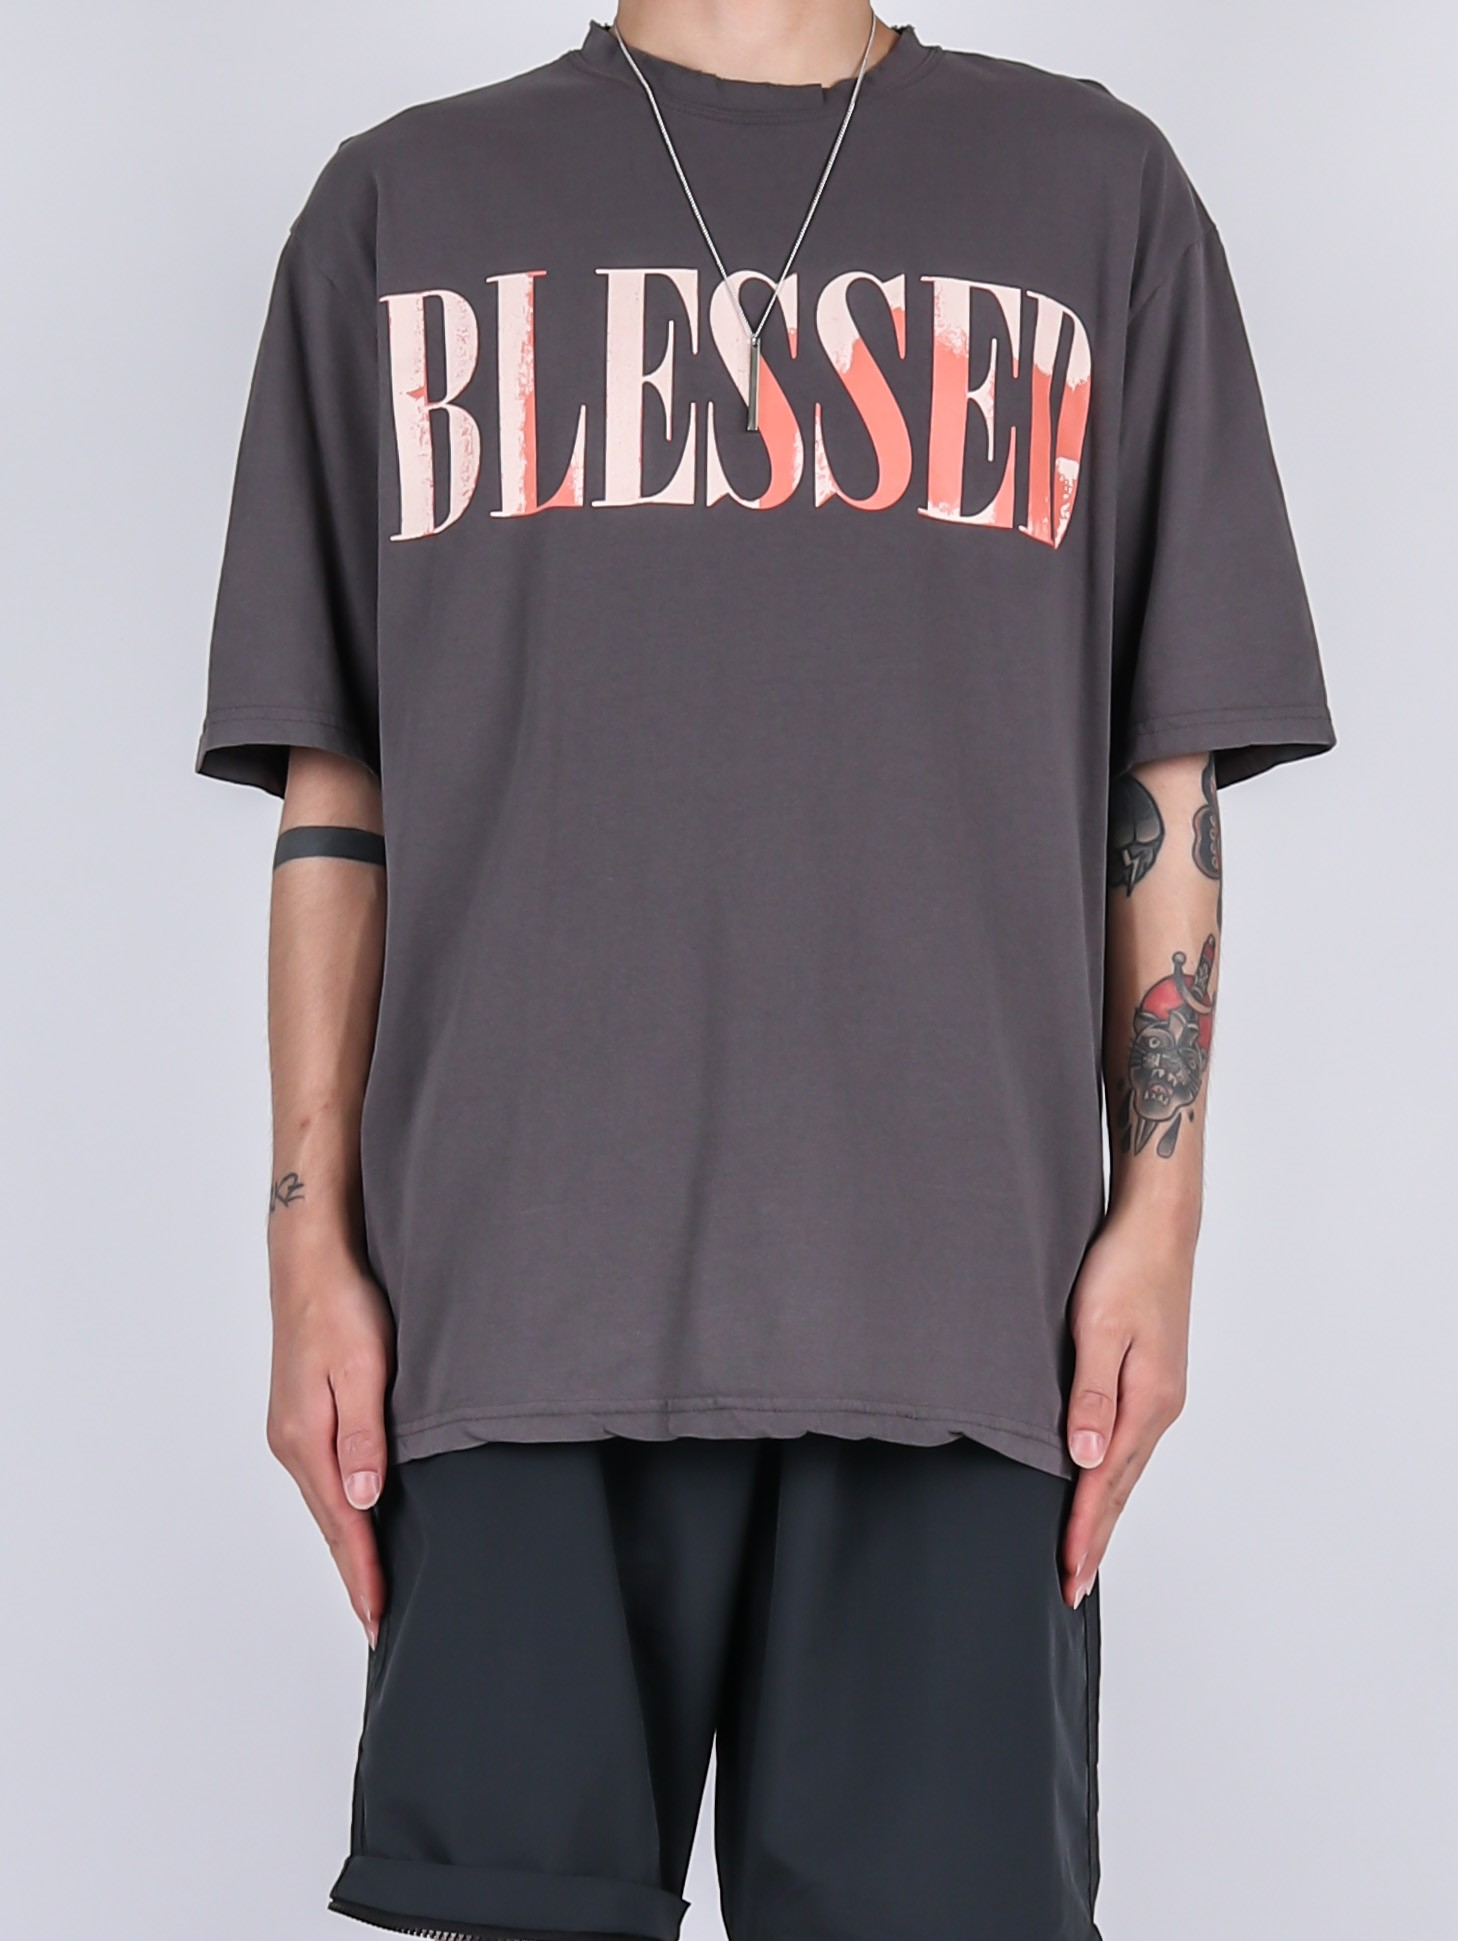 SG Blessed Short Sleeve Tee (3color)